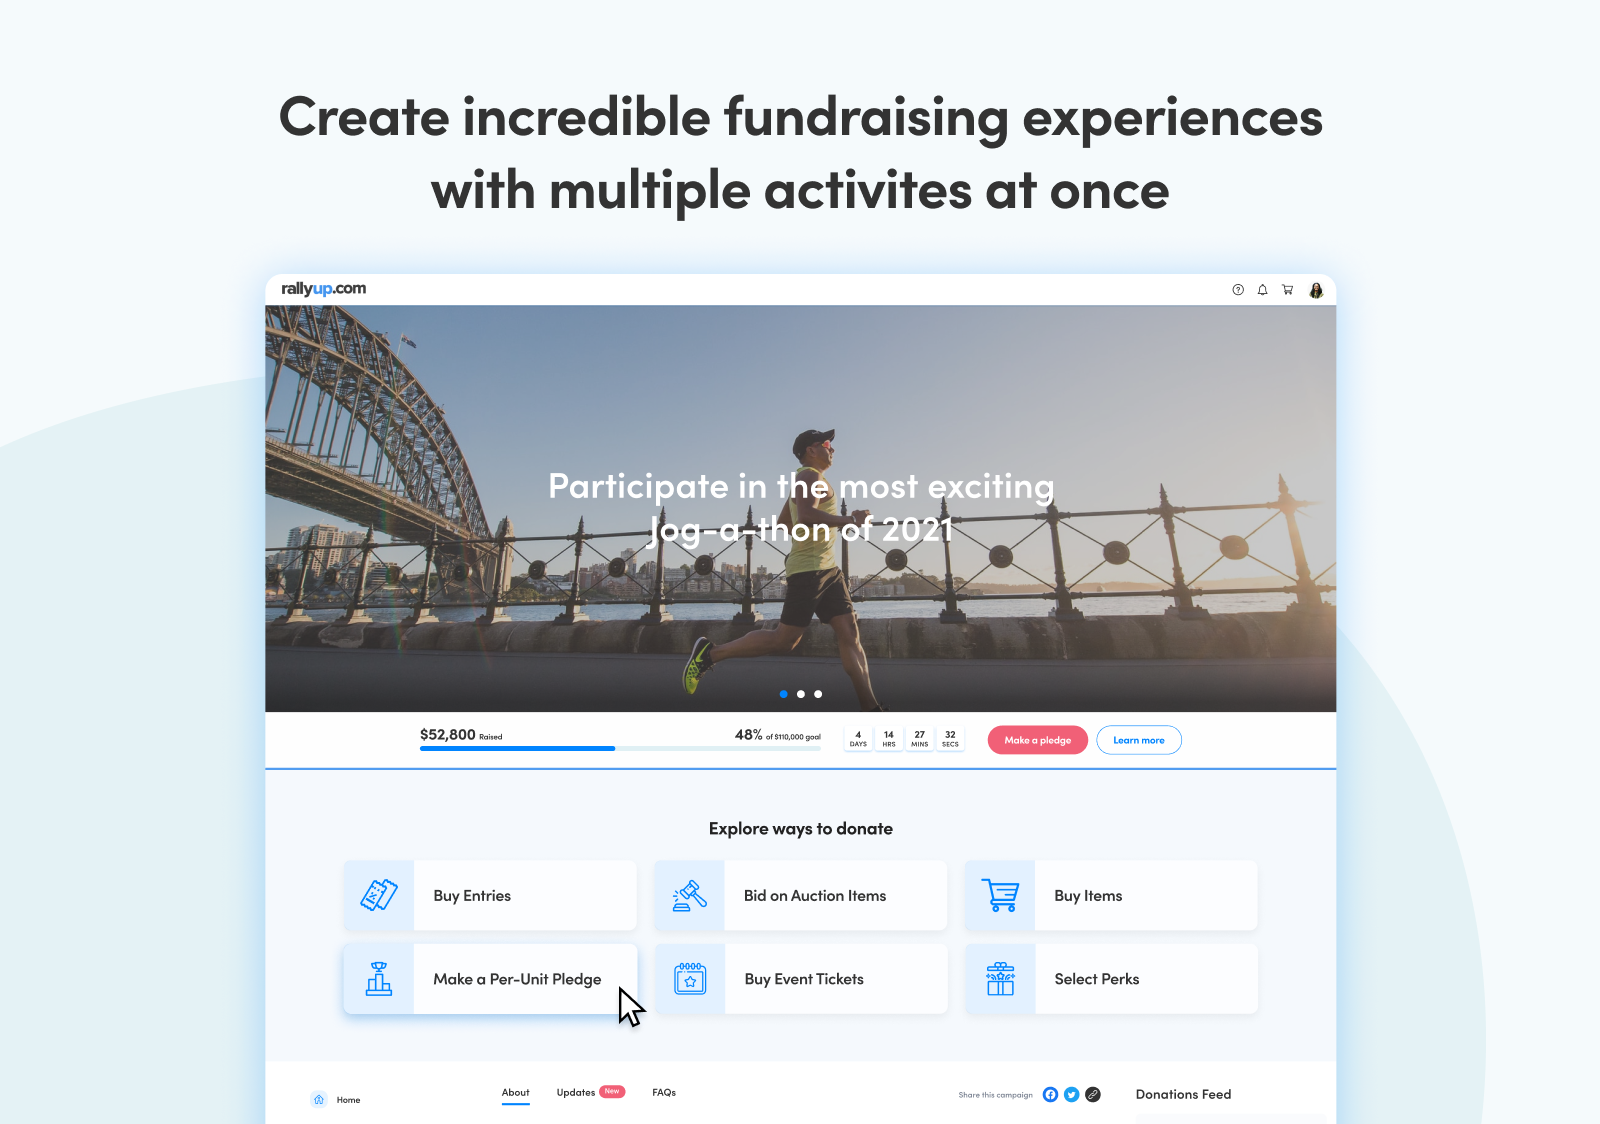 Create incredible fundraising experiences with multiple activities at once